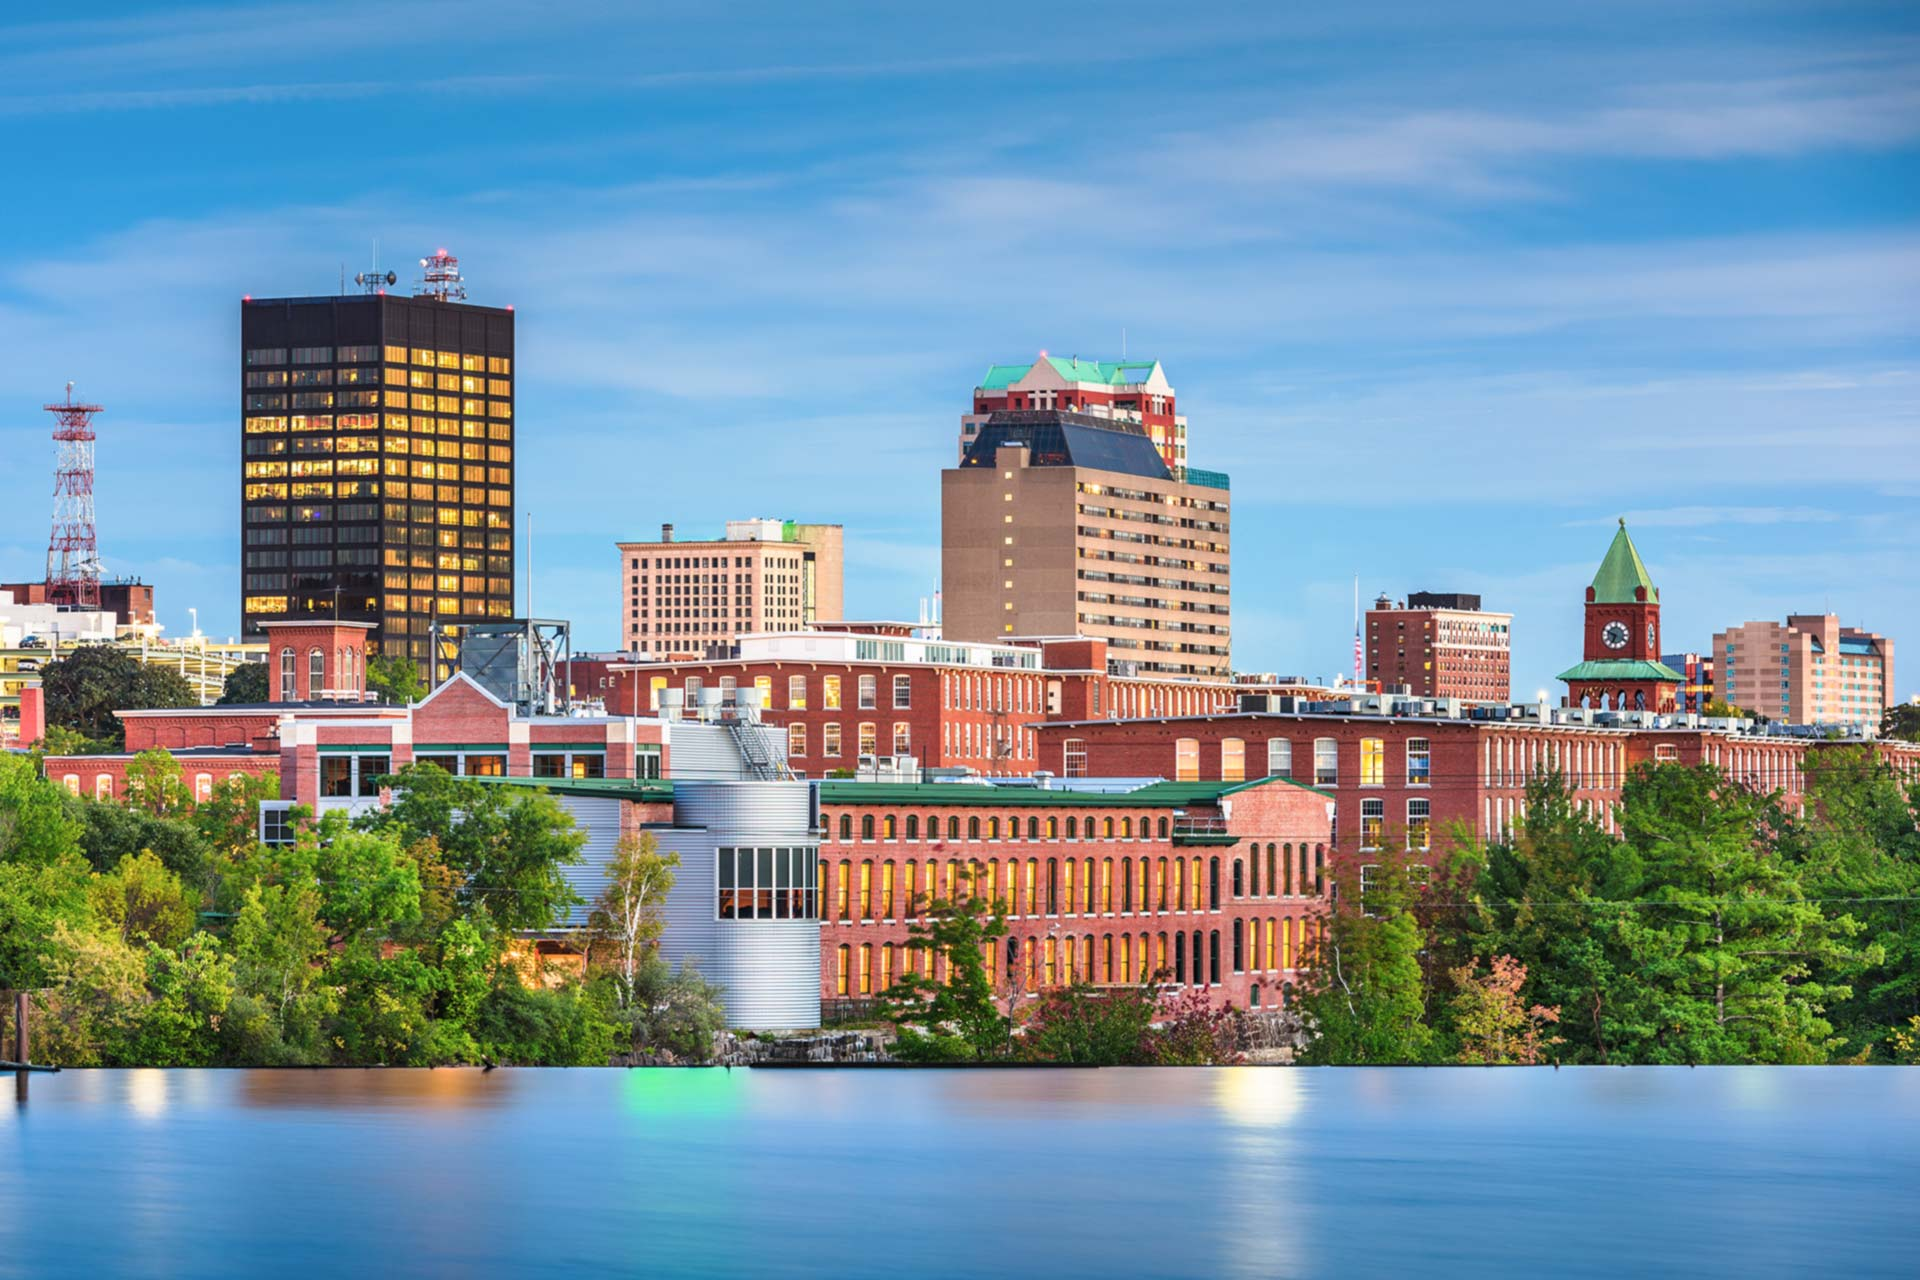 New Hampshire has special considerations for a registered agent.  CT Corporation has experienced professionals who can assist.